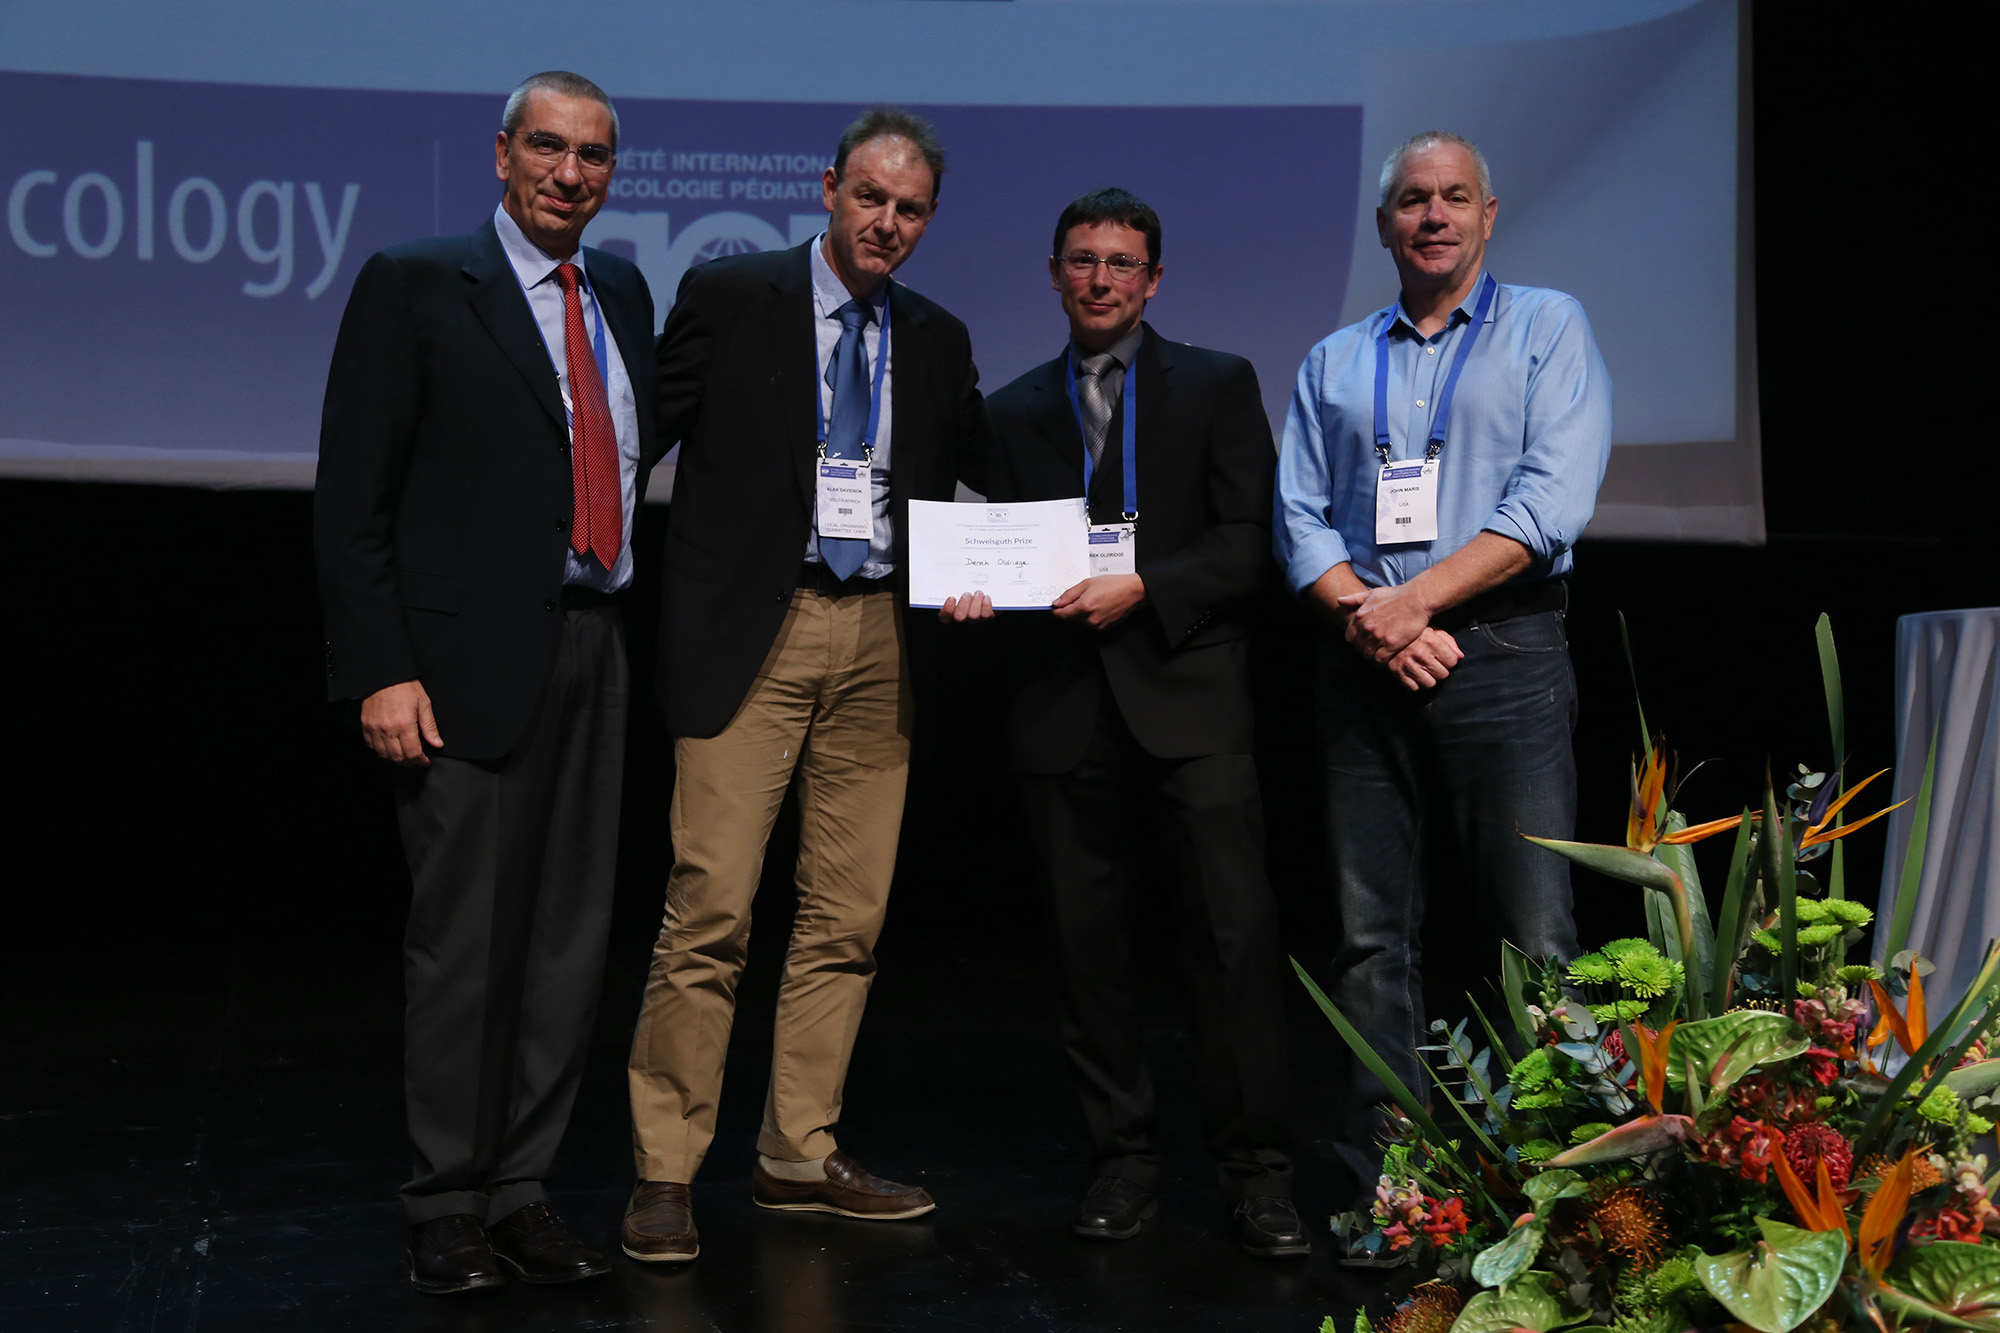 SIOP 2015 Schweisguth Winner Derek Oldridge (third from left)